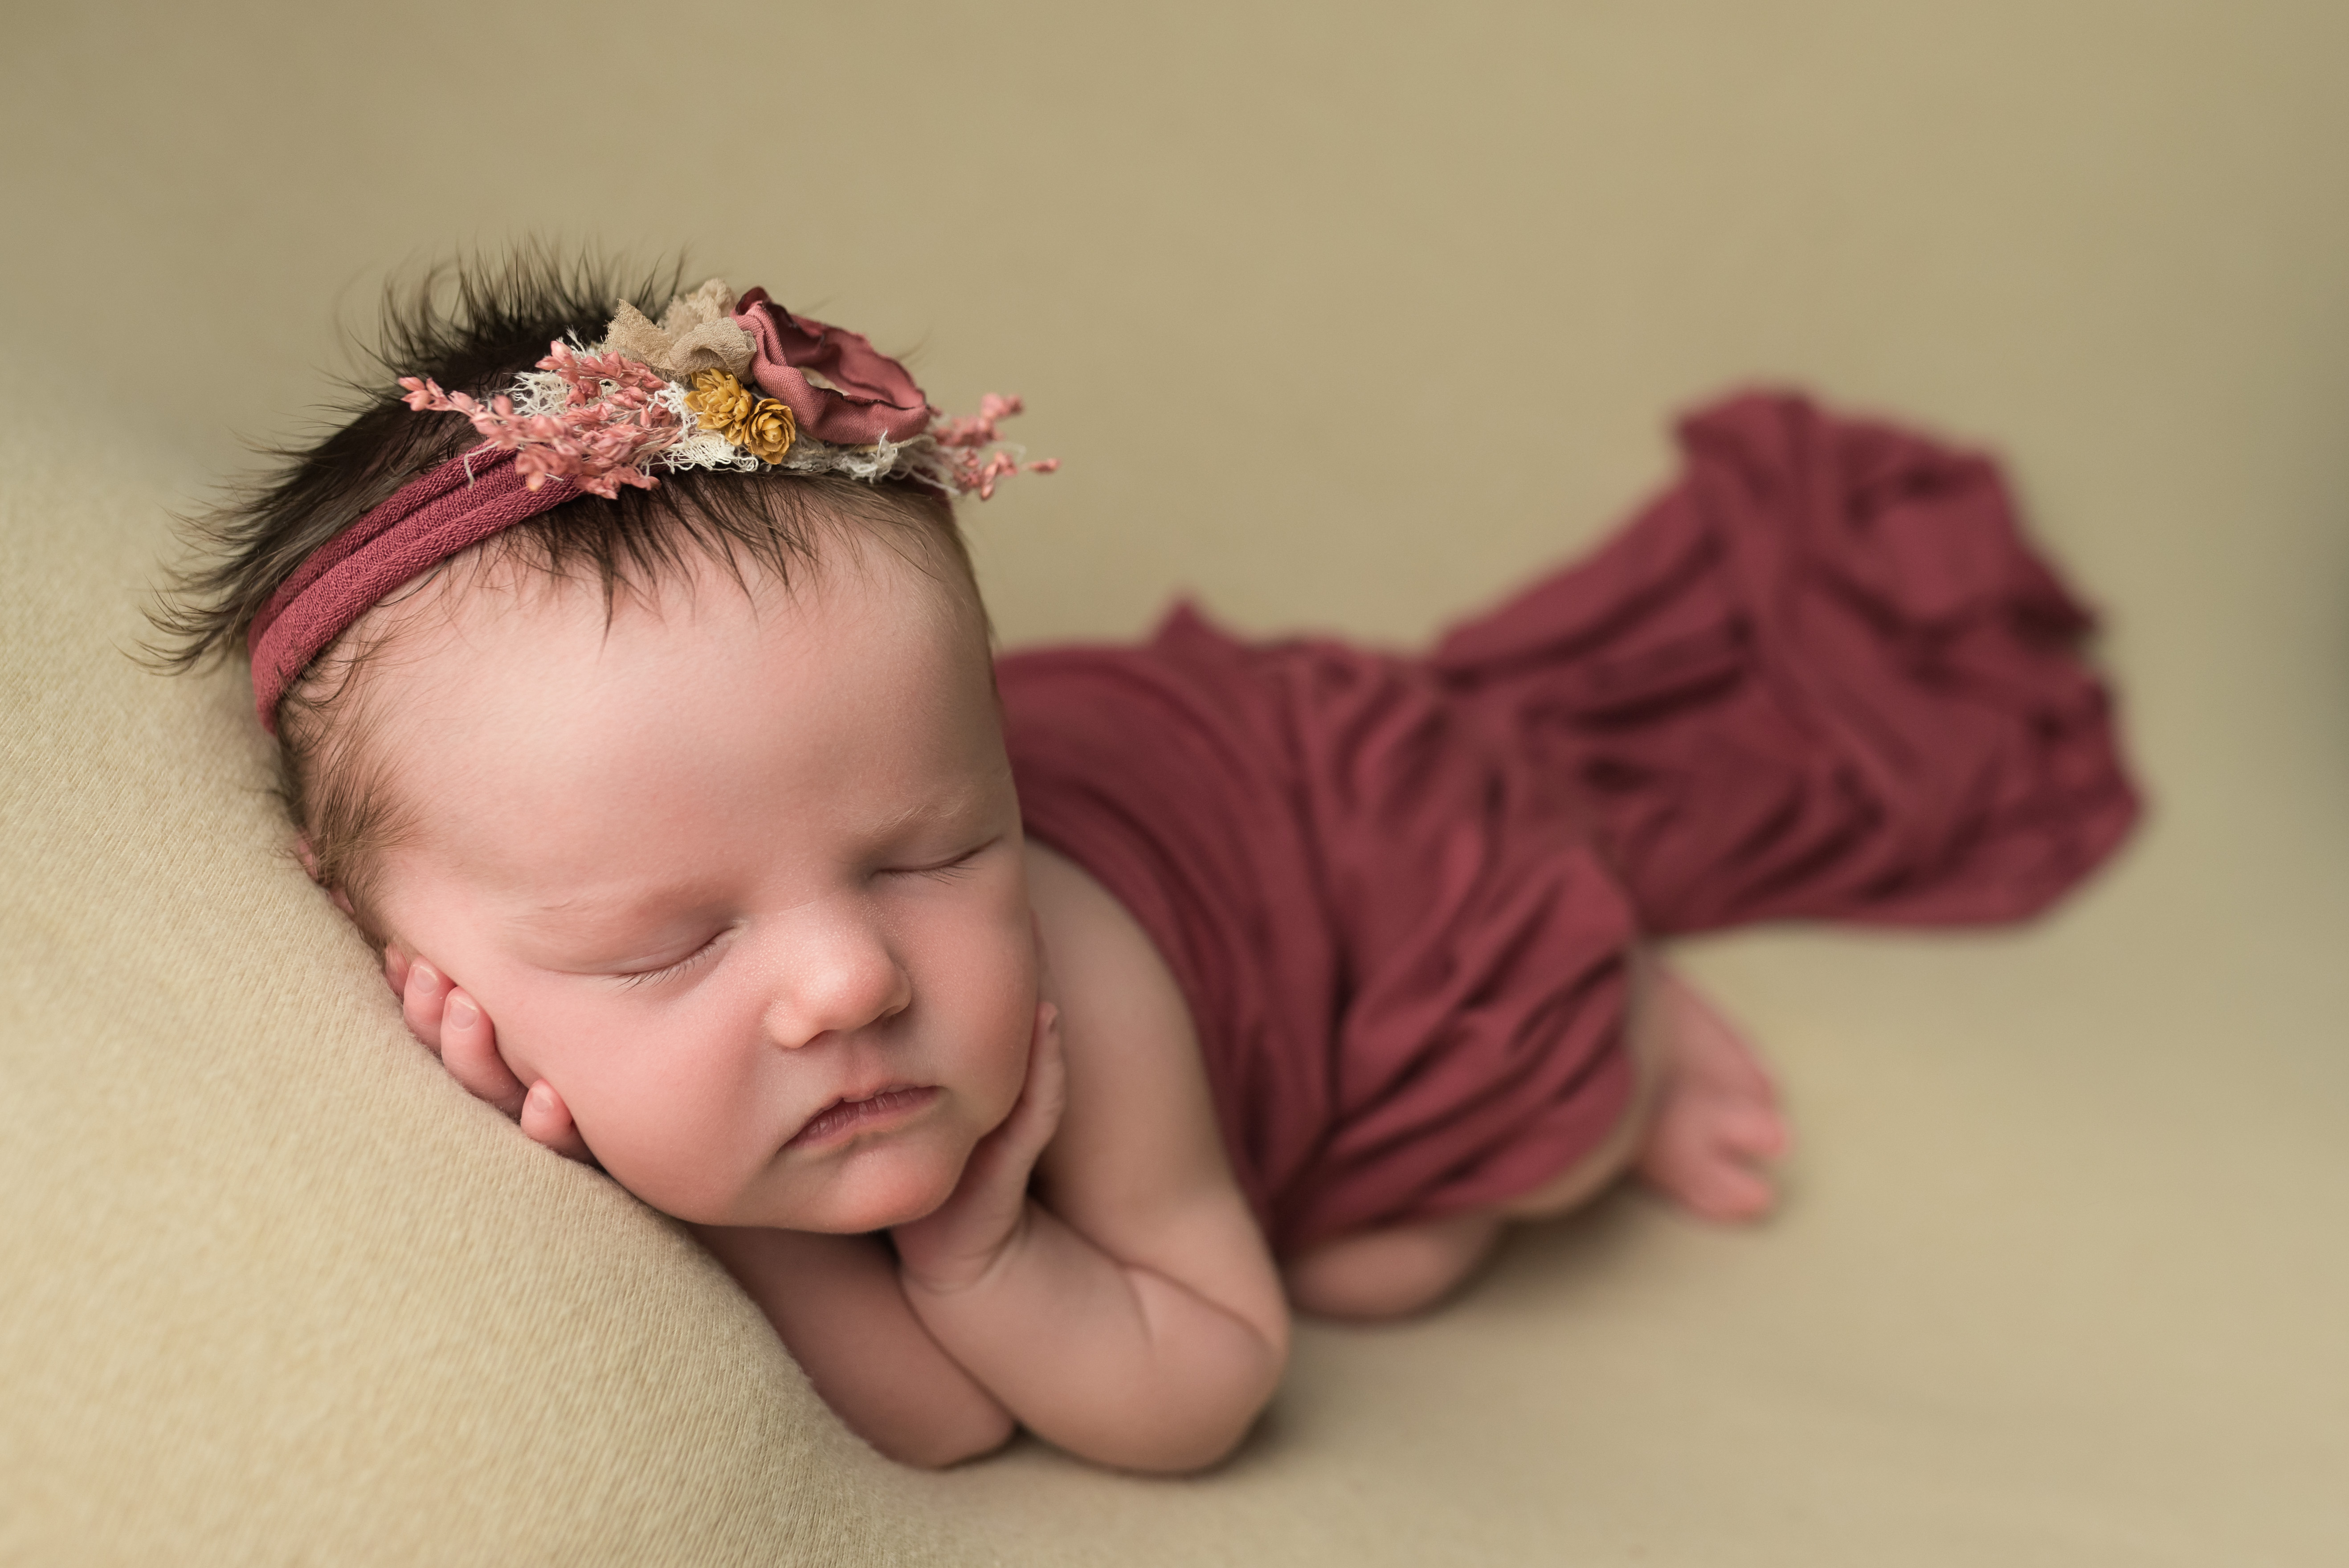 A newborn baby girl sleeps during her photography session in Cedar Rapids